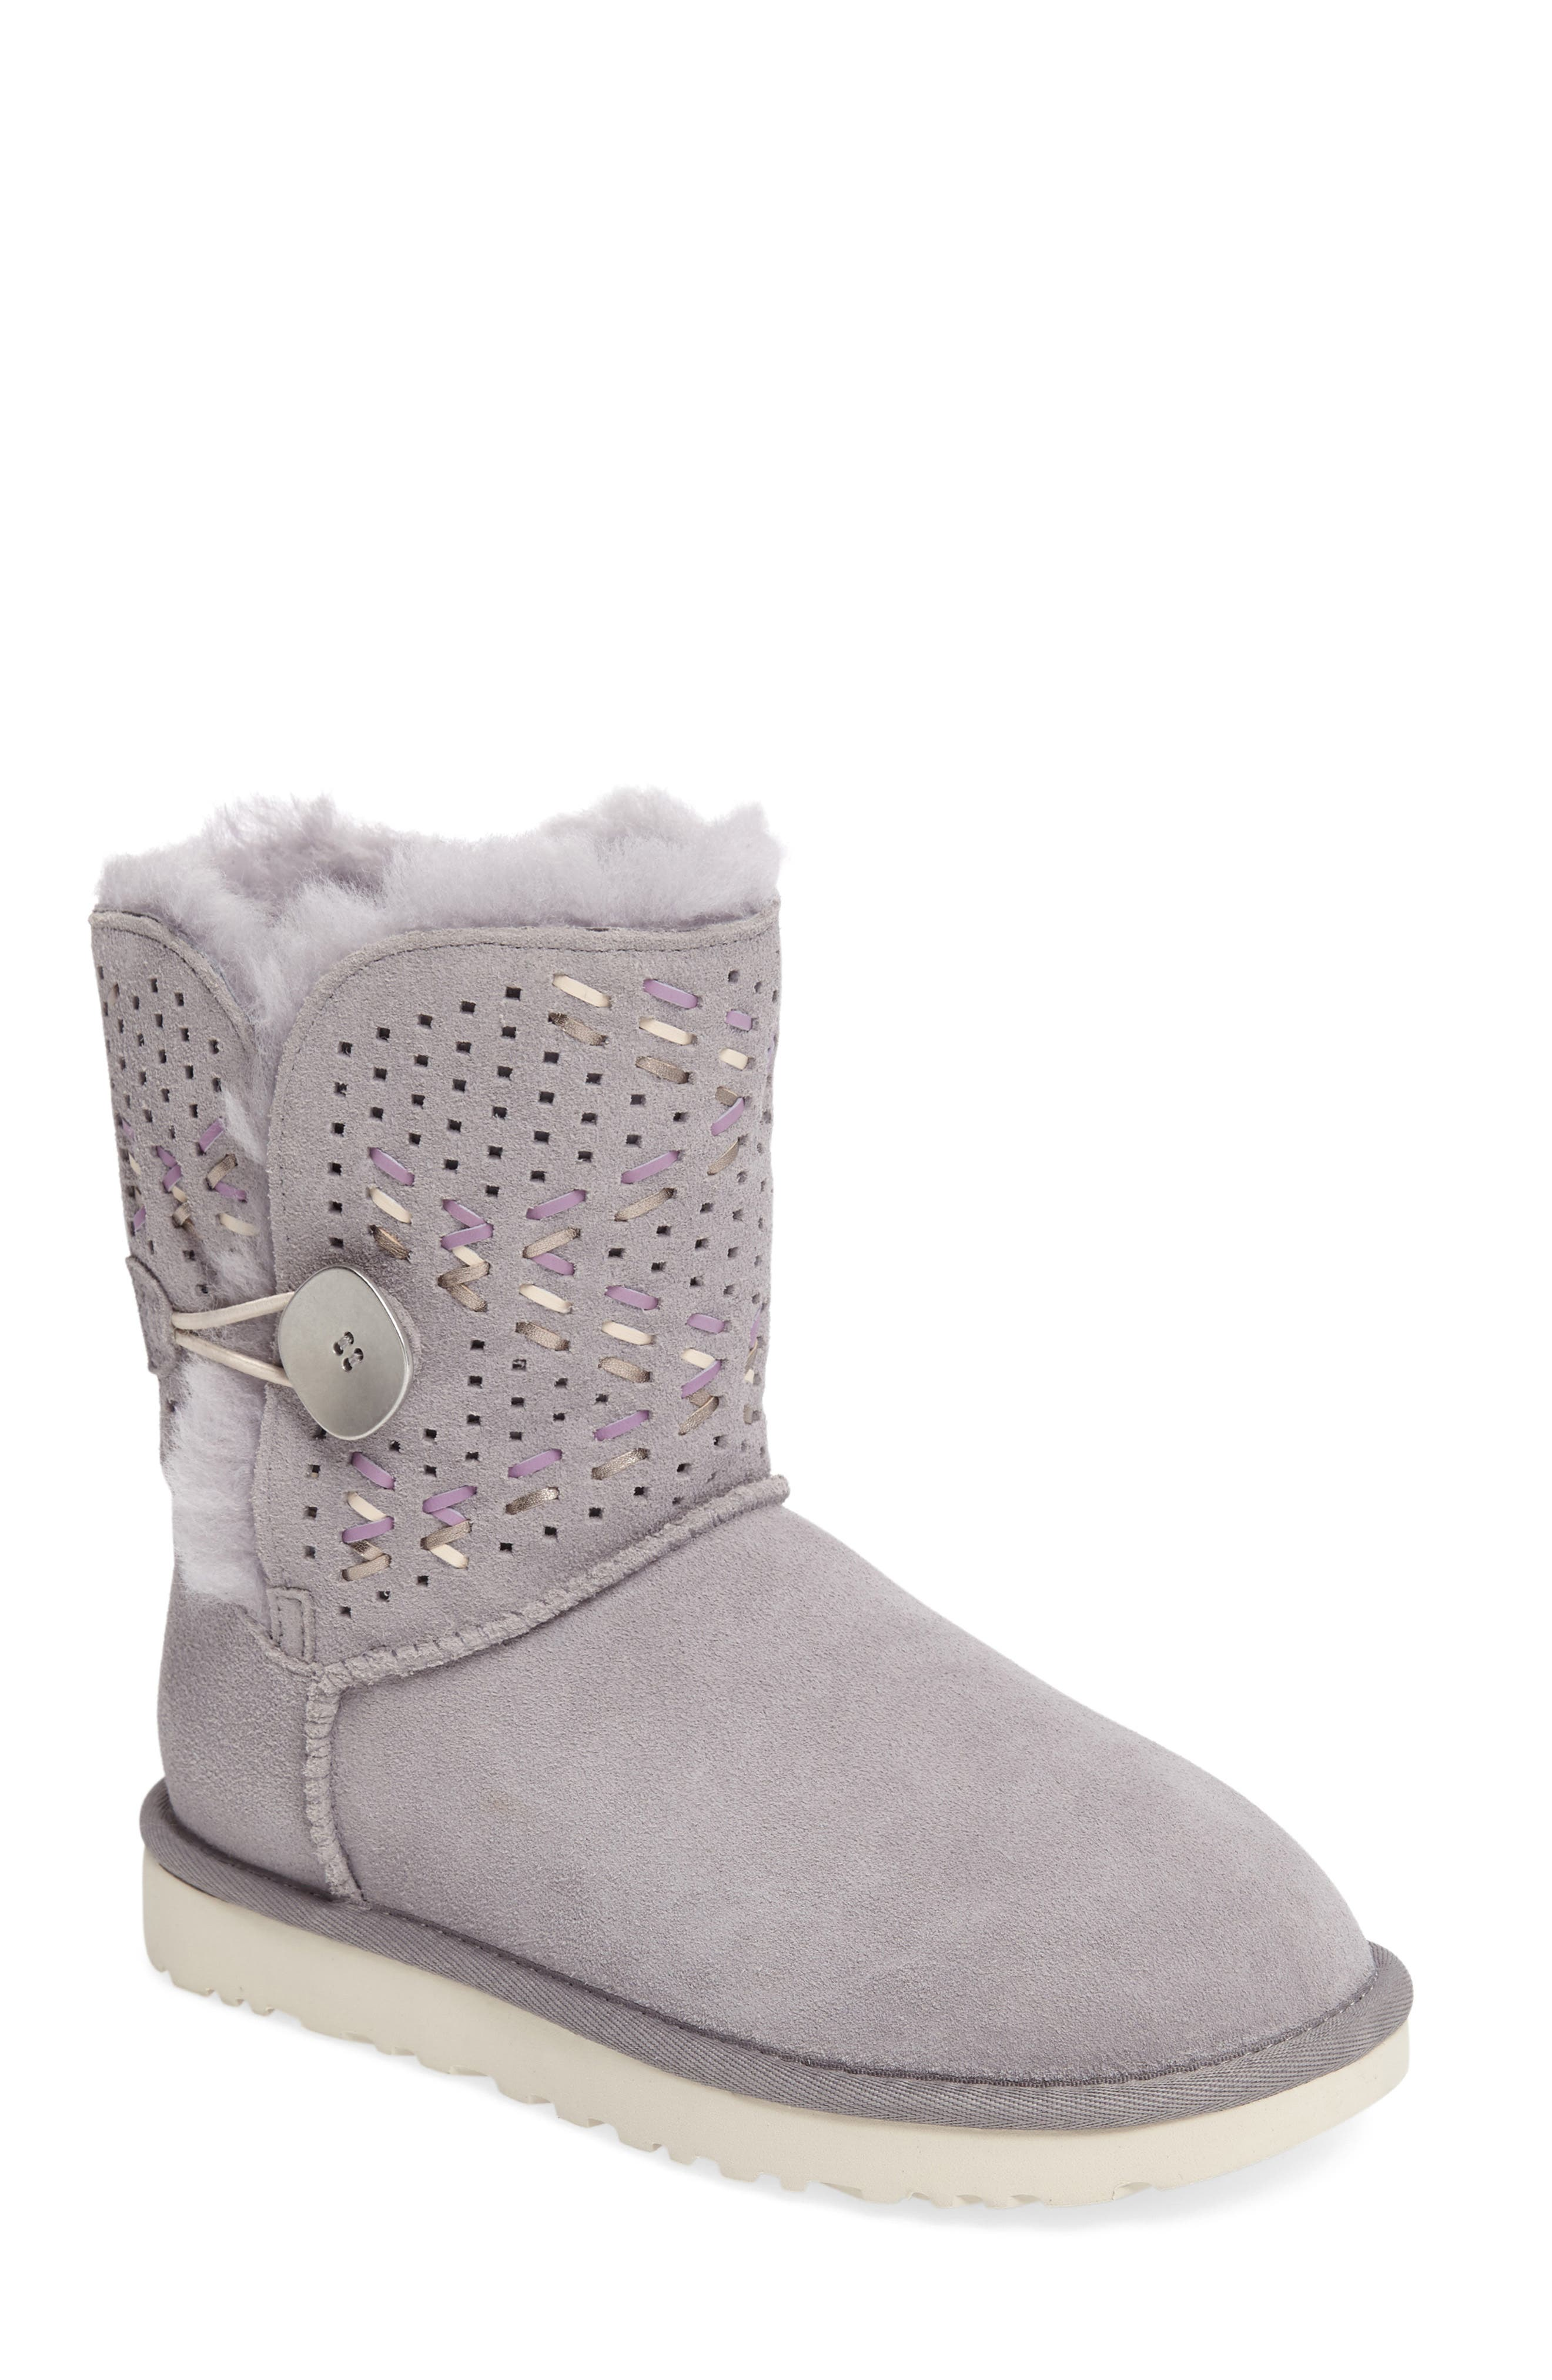 Bailey Button Tehuano Genuine Shearling Boot,                             Main thumbnail 1, color,                             055